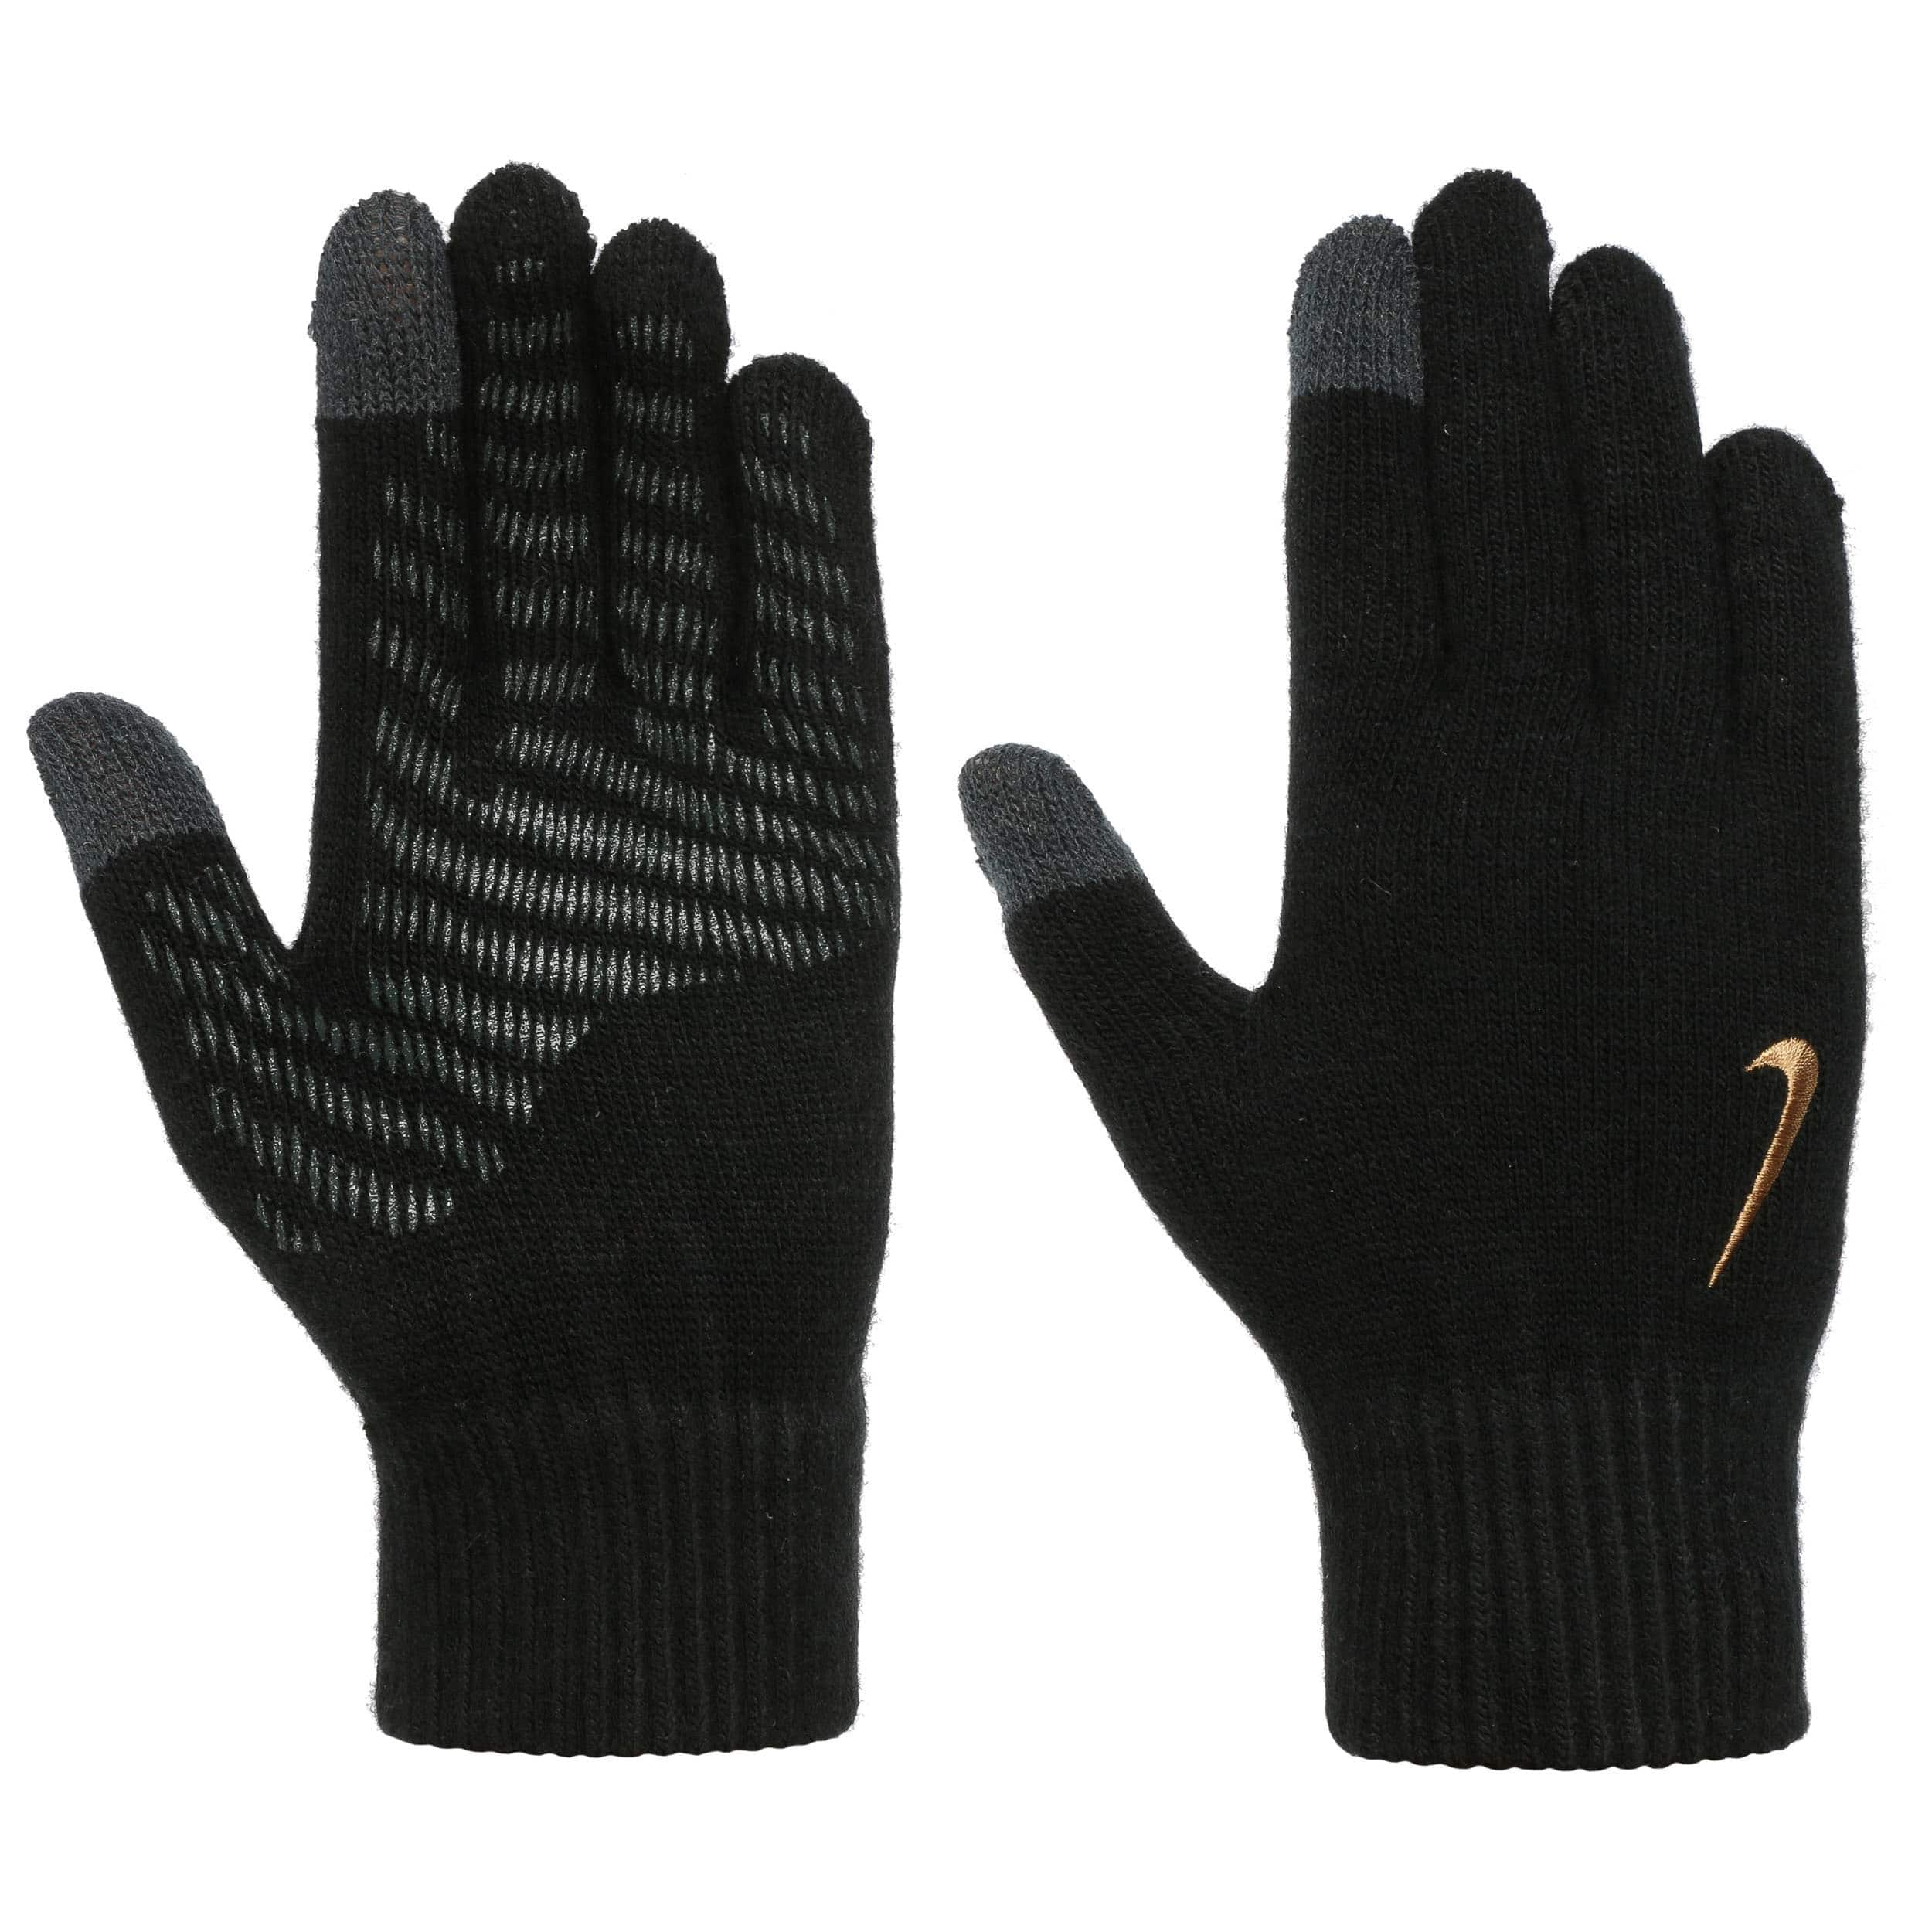 Knitted Tech and Grip Handschuhe by Nike